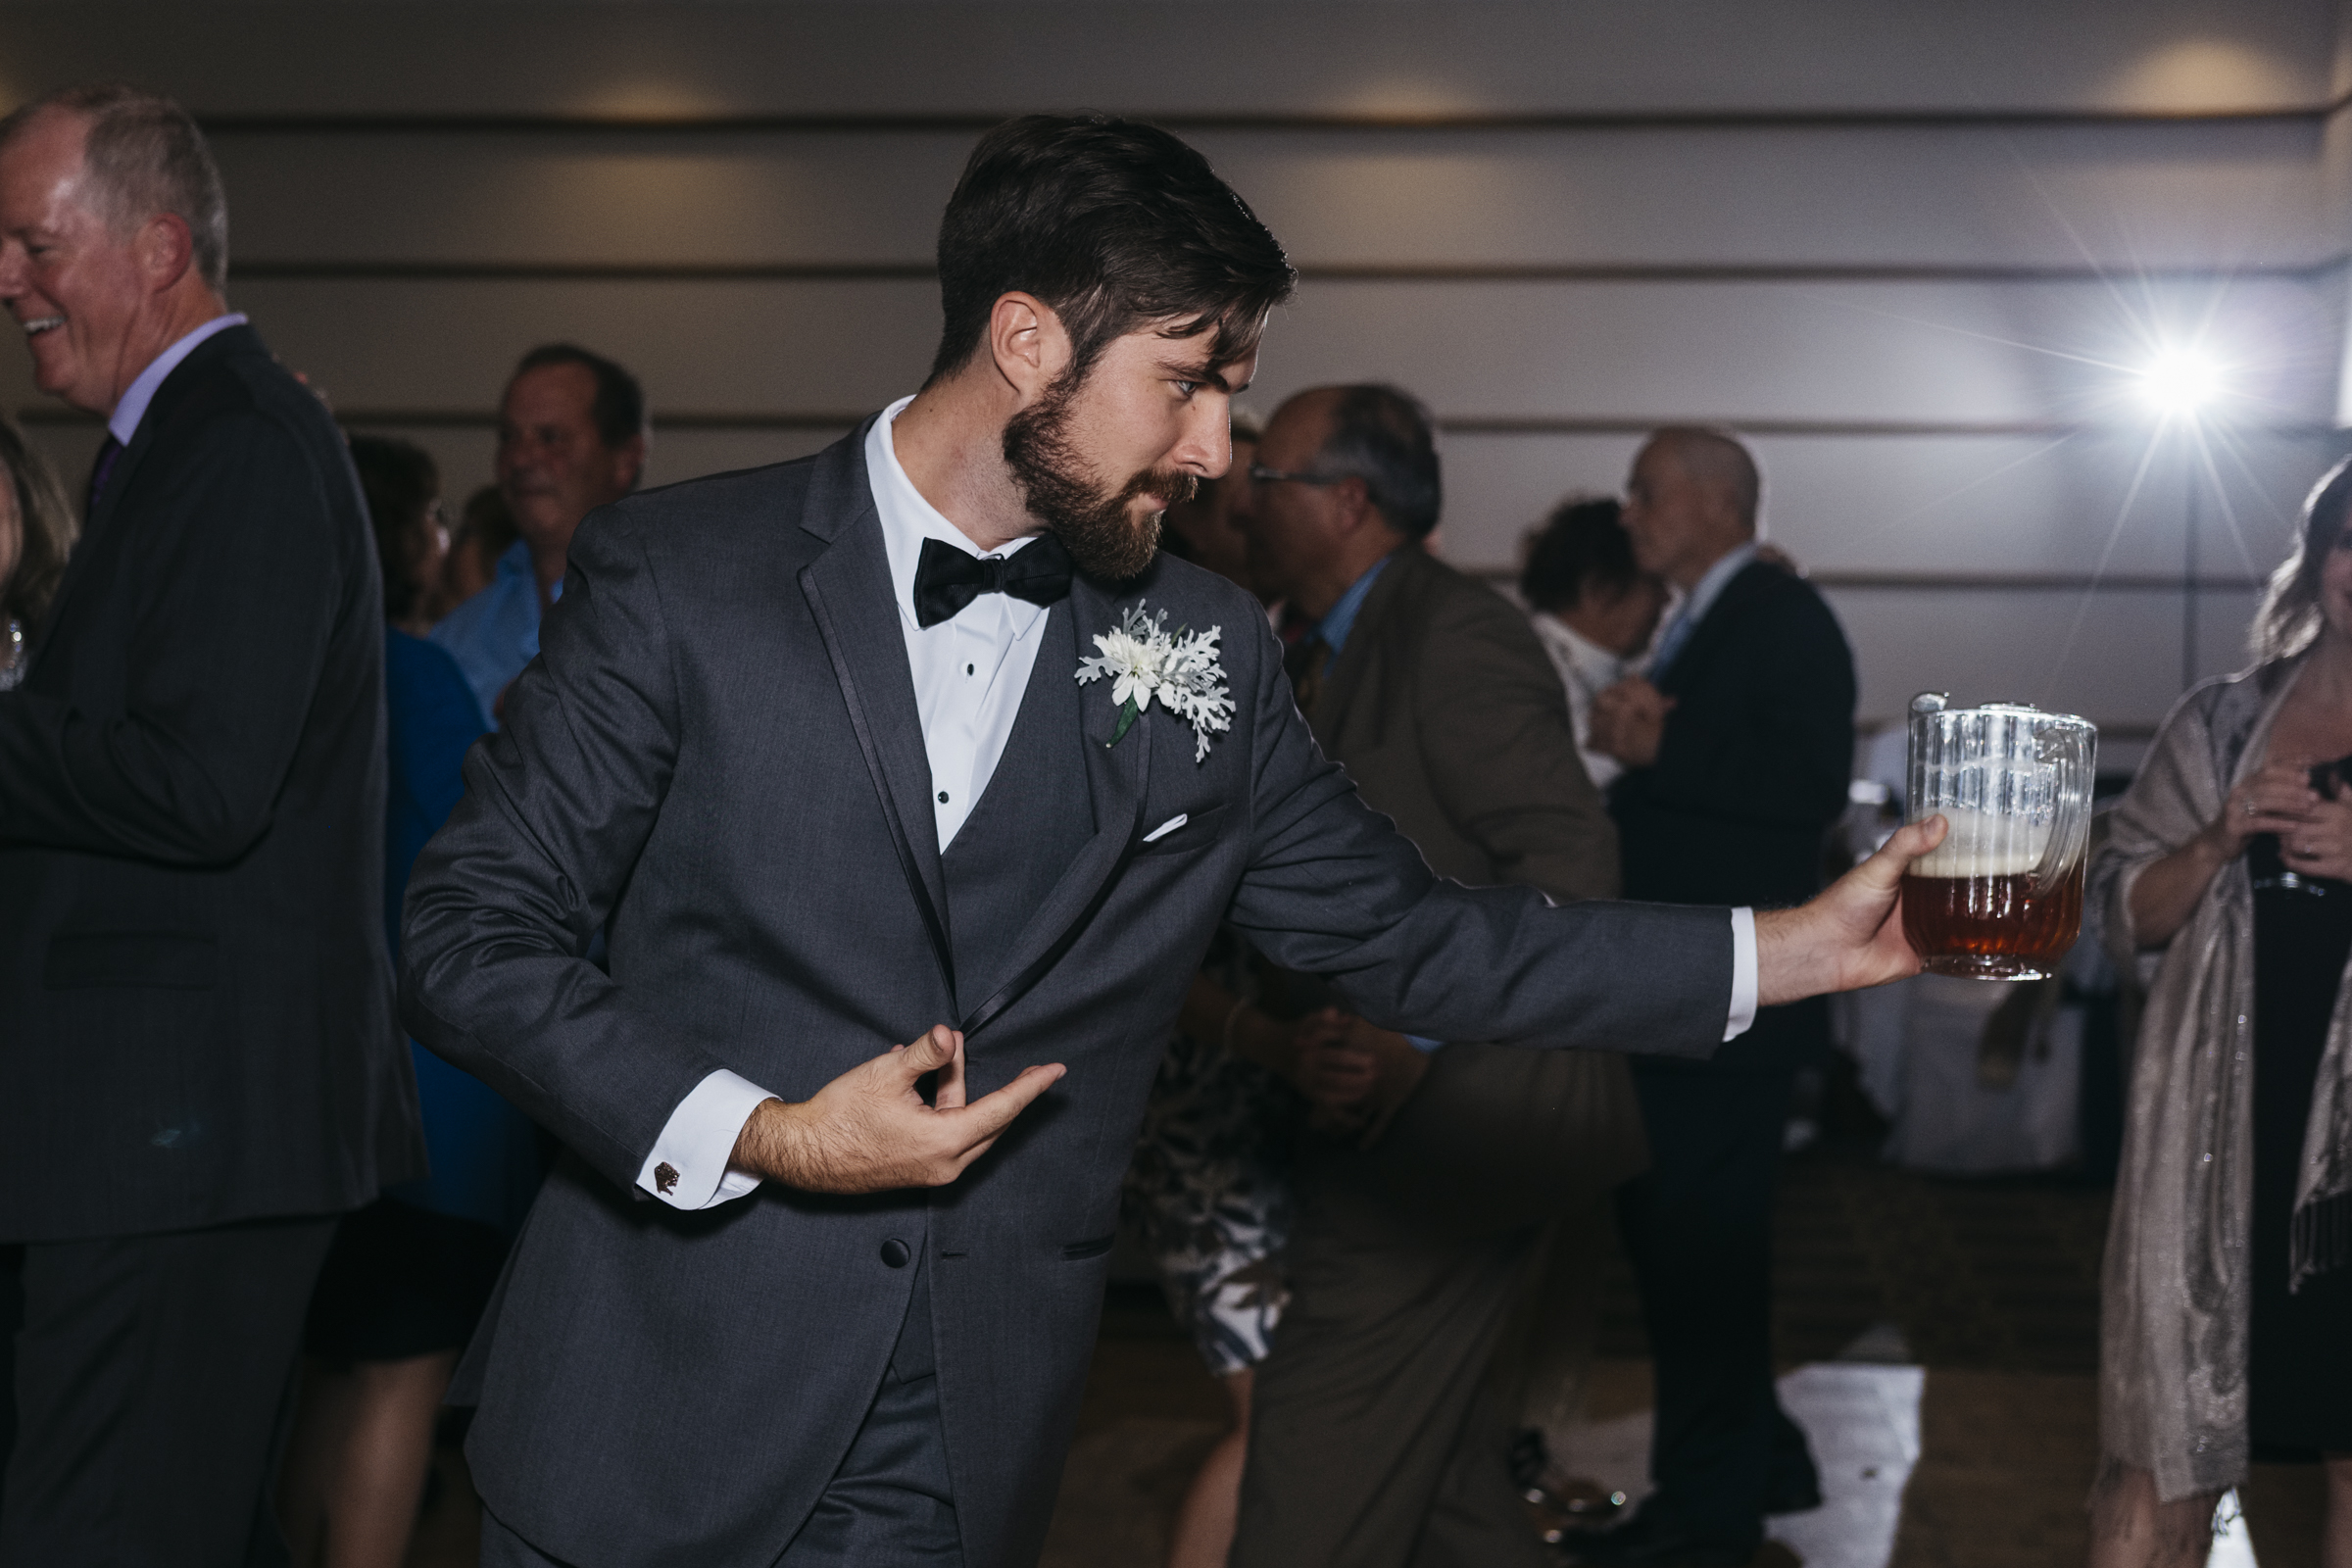 Groomsman dances with a pitcher of beer for a funny photo at wedding reception in Ohio